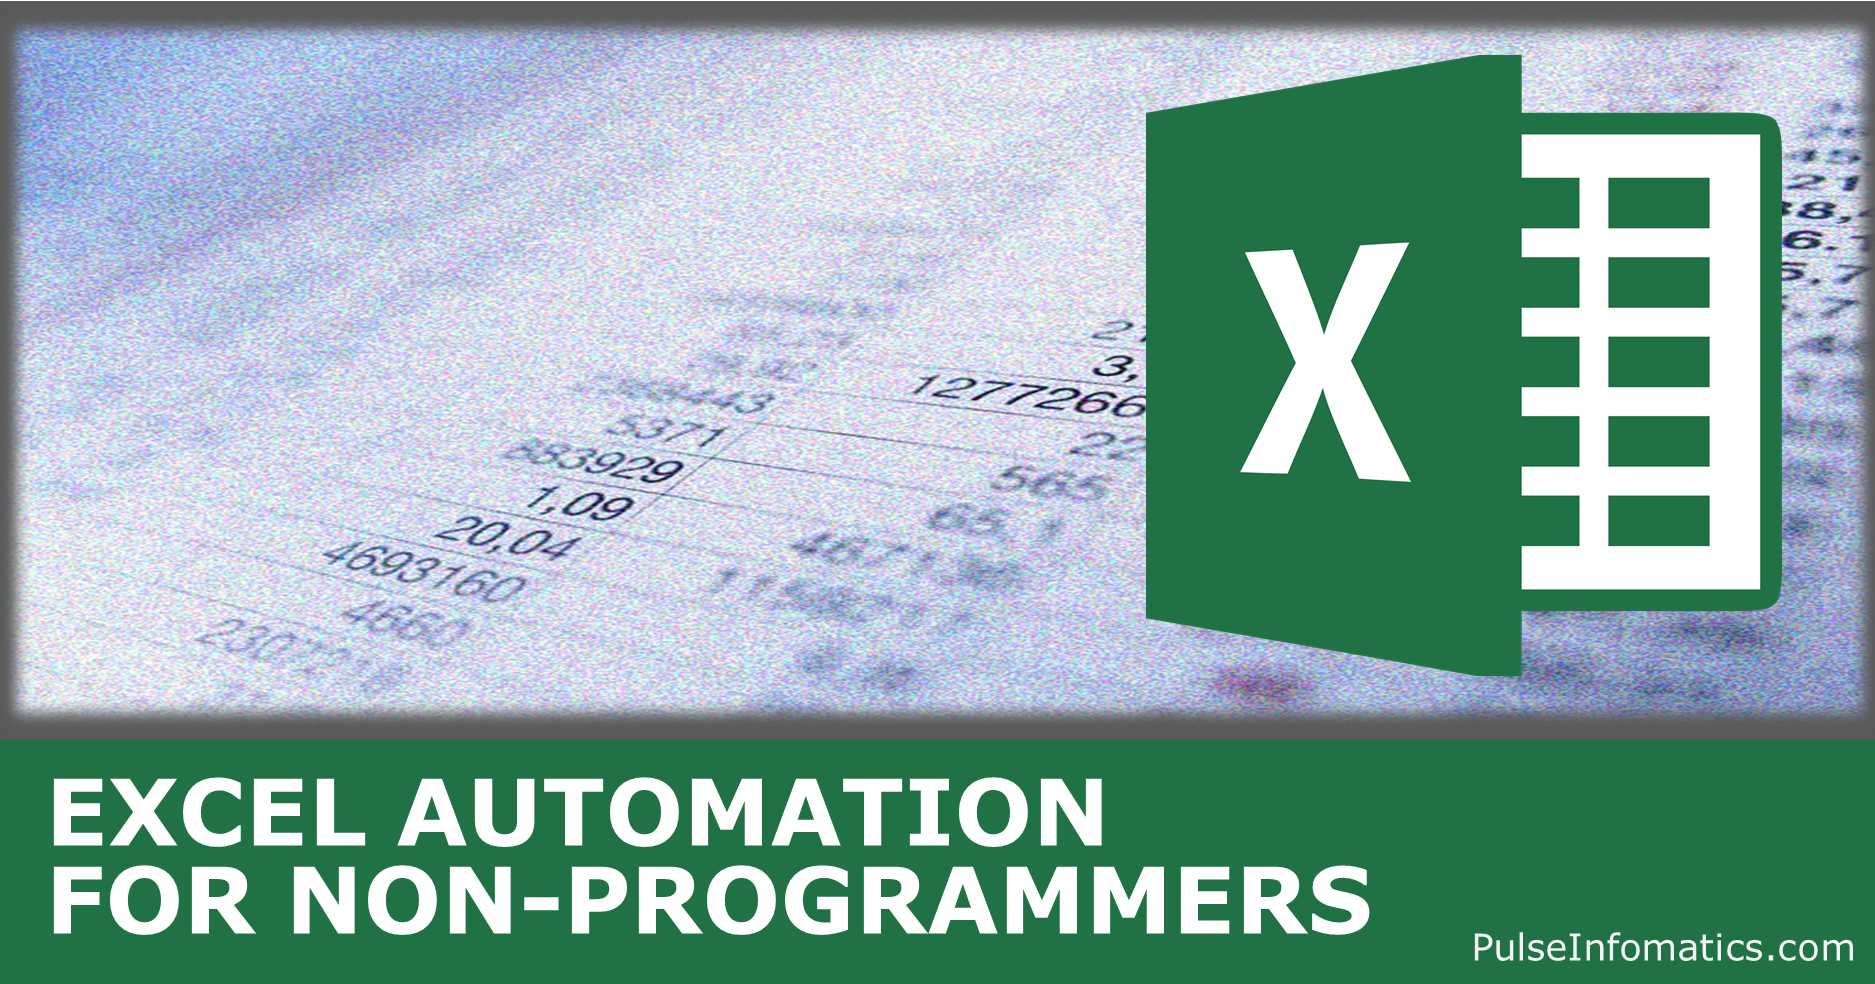 Learn how to automate using Visual-basic for Applications